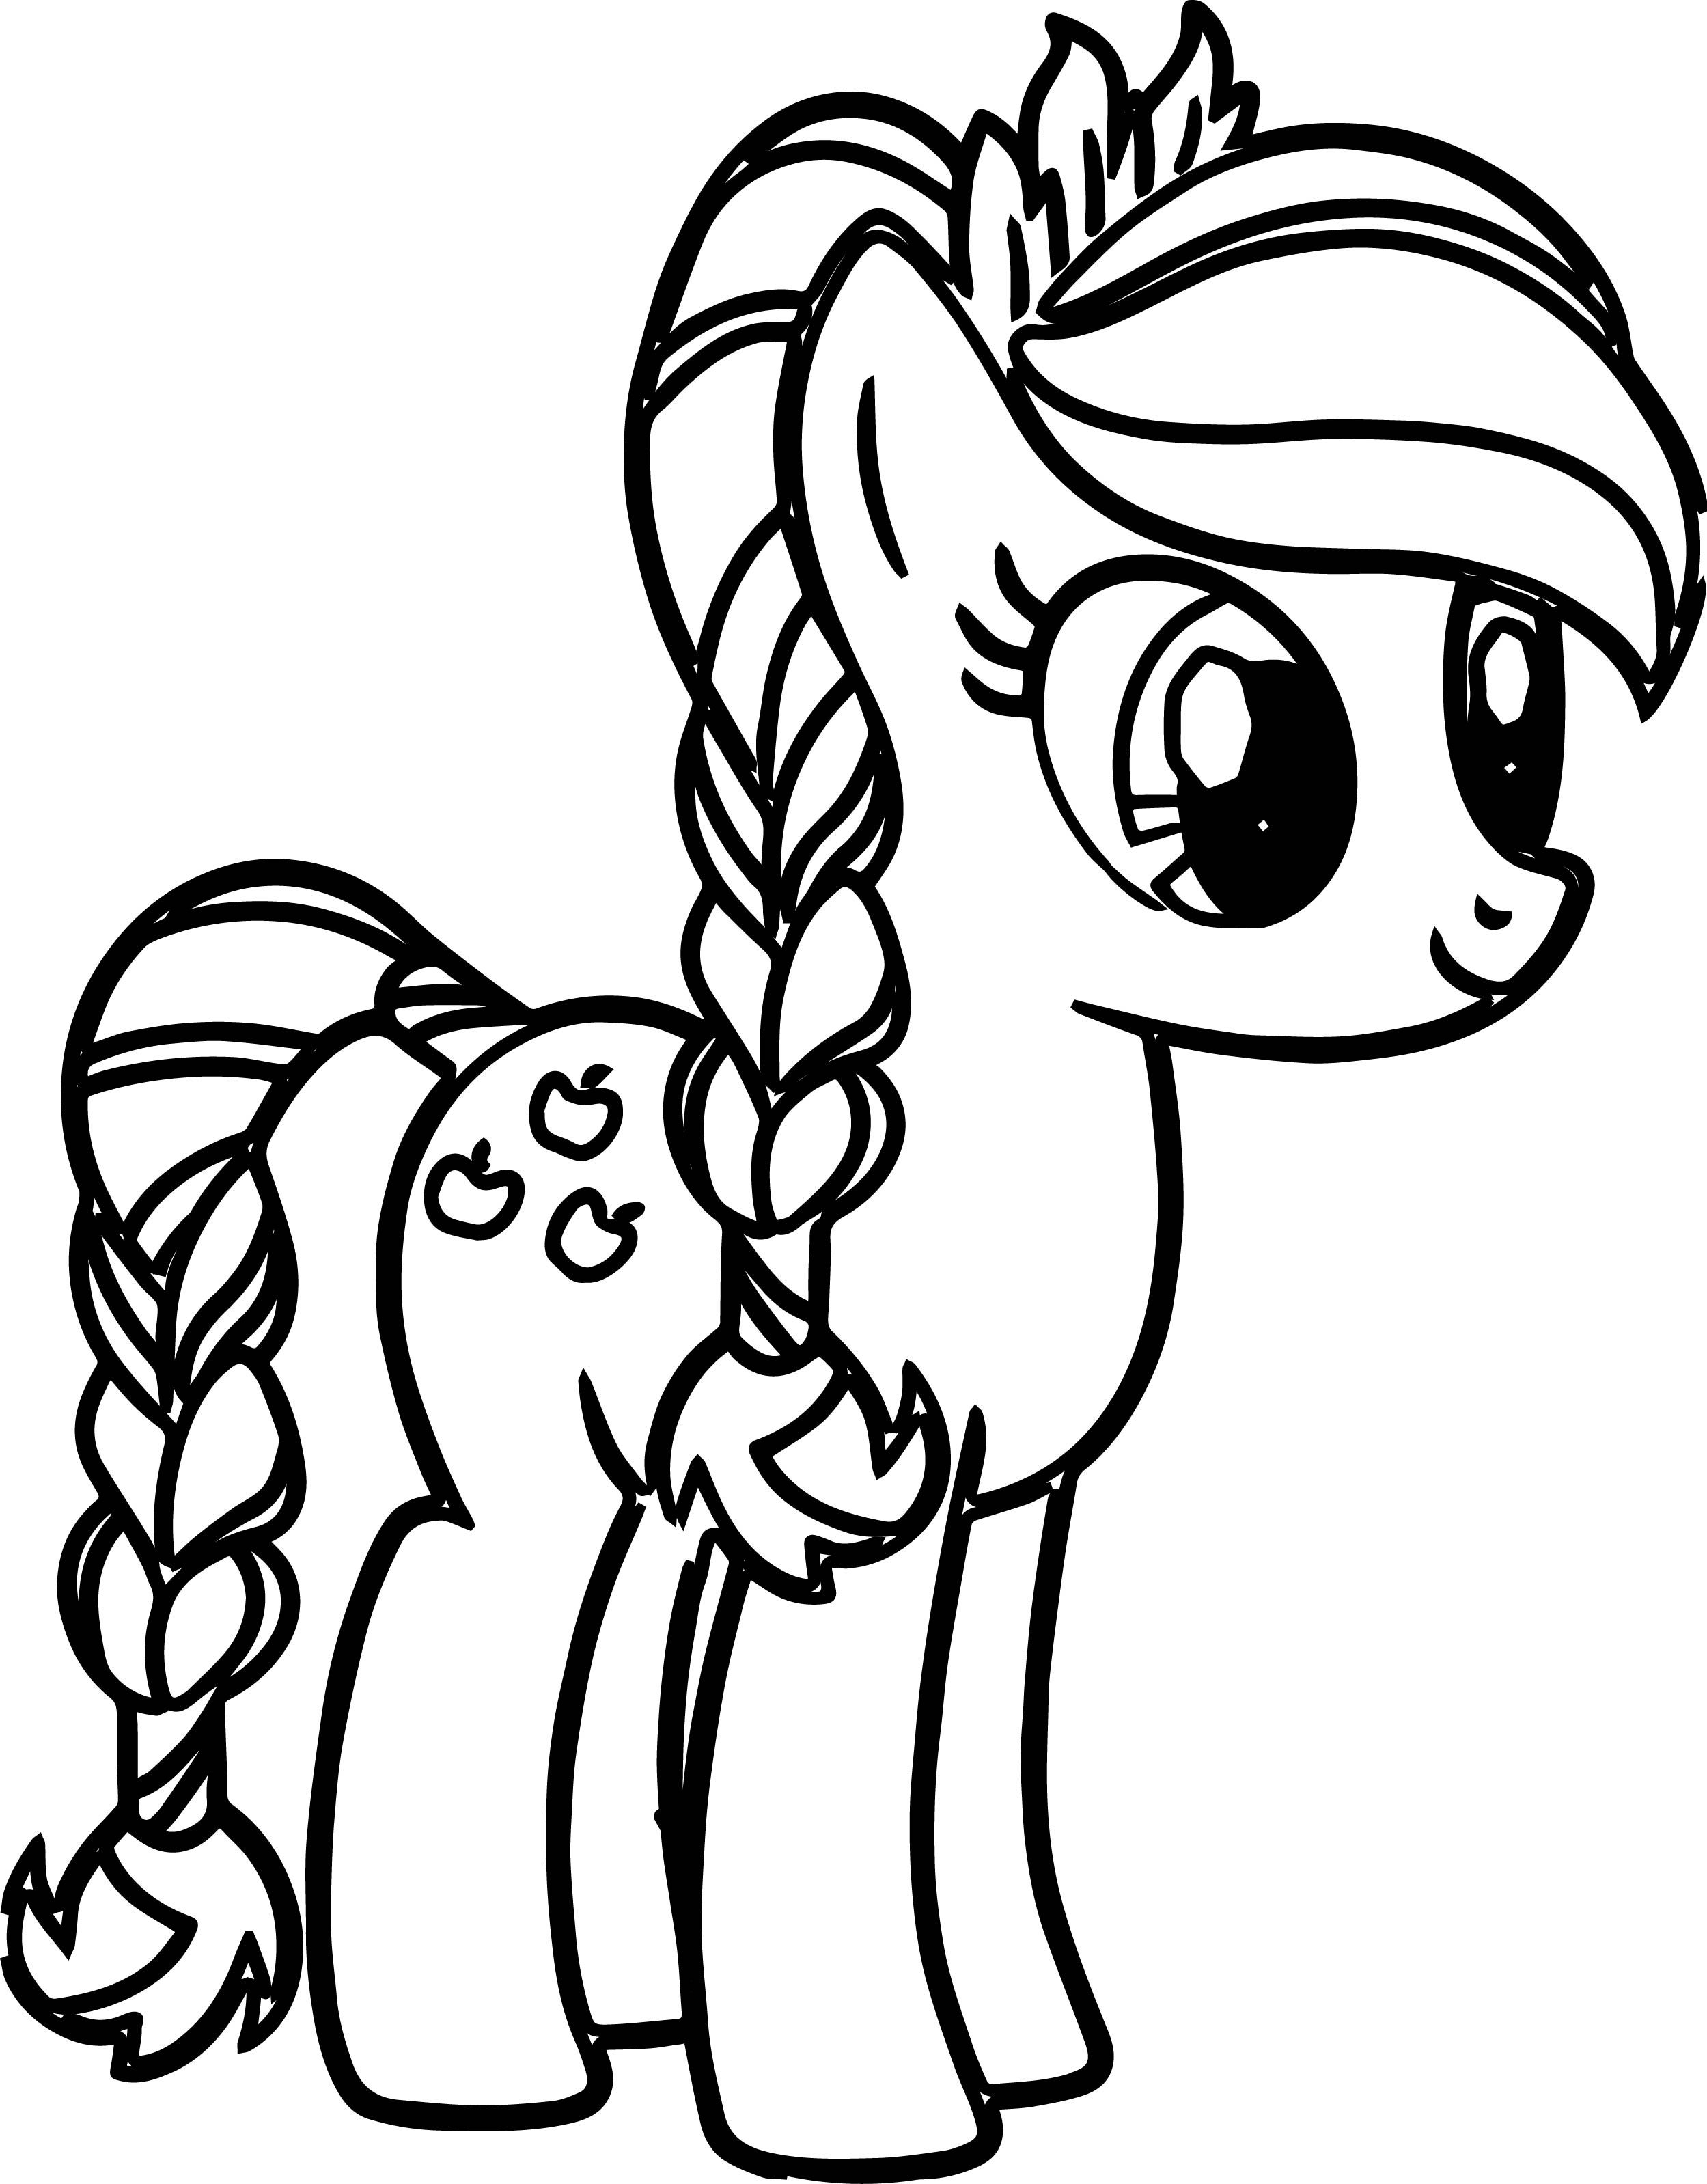 my little pony coloring sheets to print coloring page for my little pony rarity coloring home sheets little coloring print my pony to